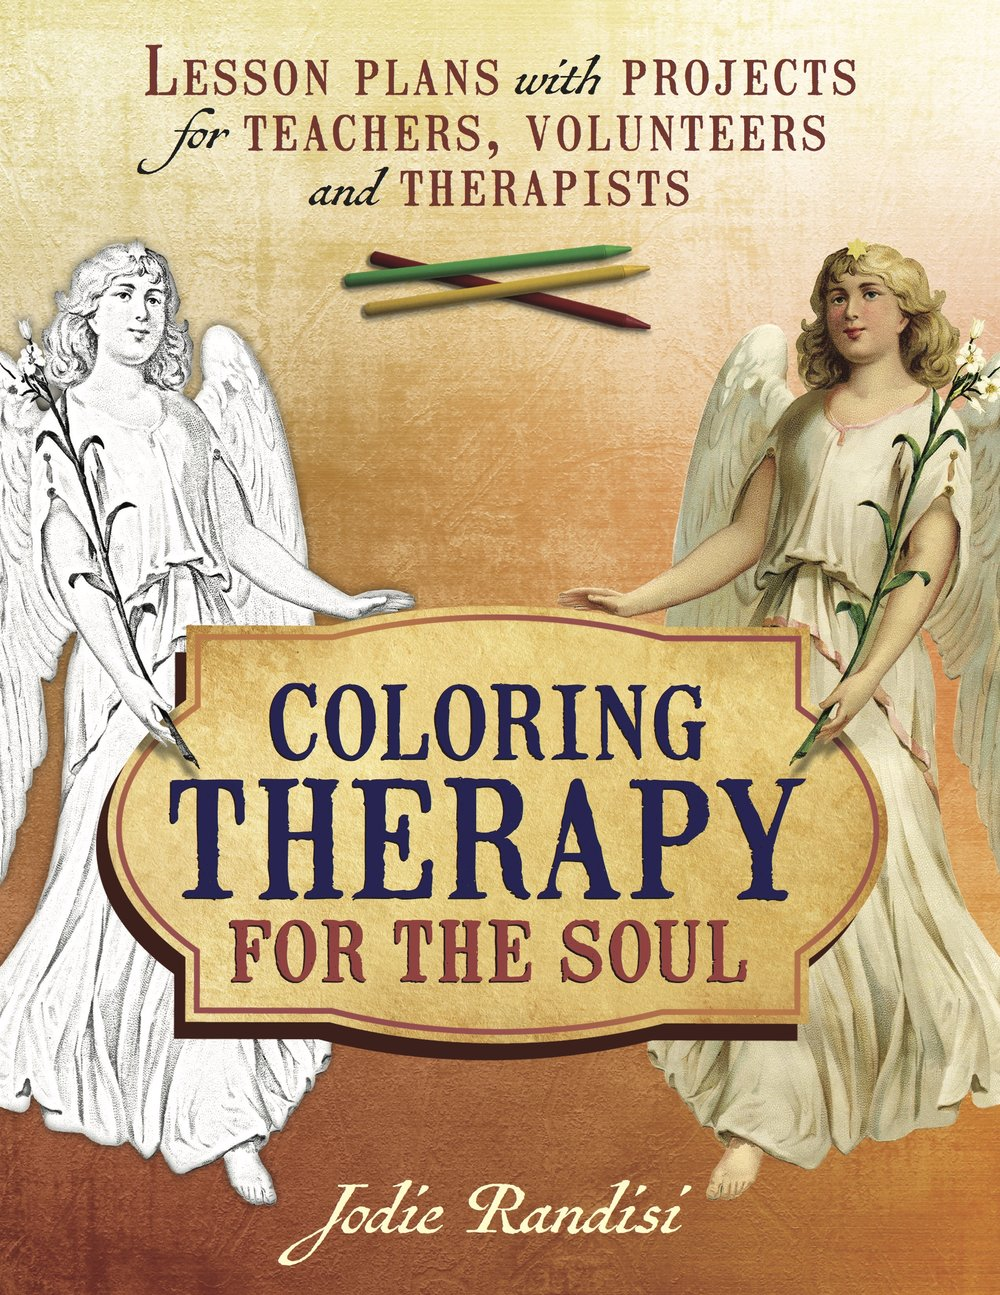 ColoringTherapy-cover.jpg